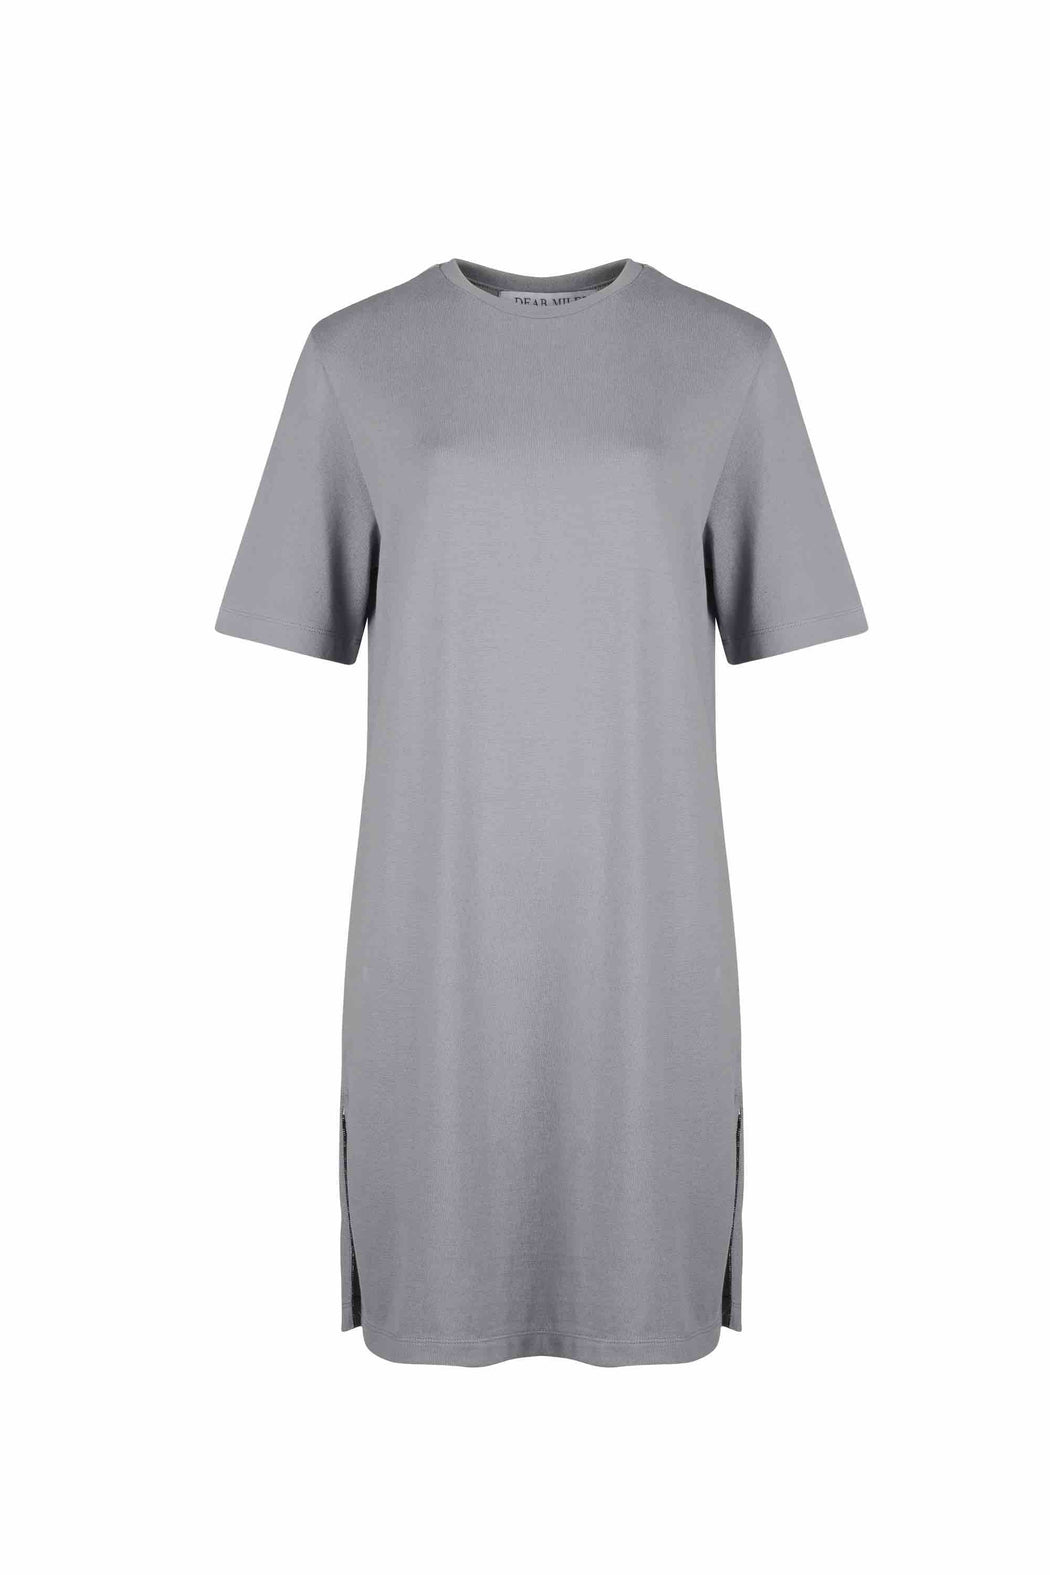 Front view of Women Side Slit Long T-Shirt, made with Organic cotton in Grey